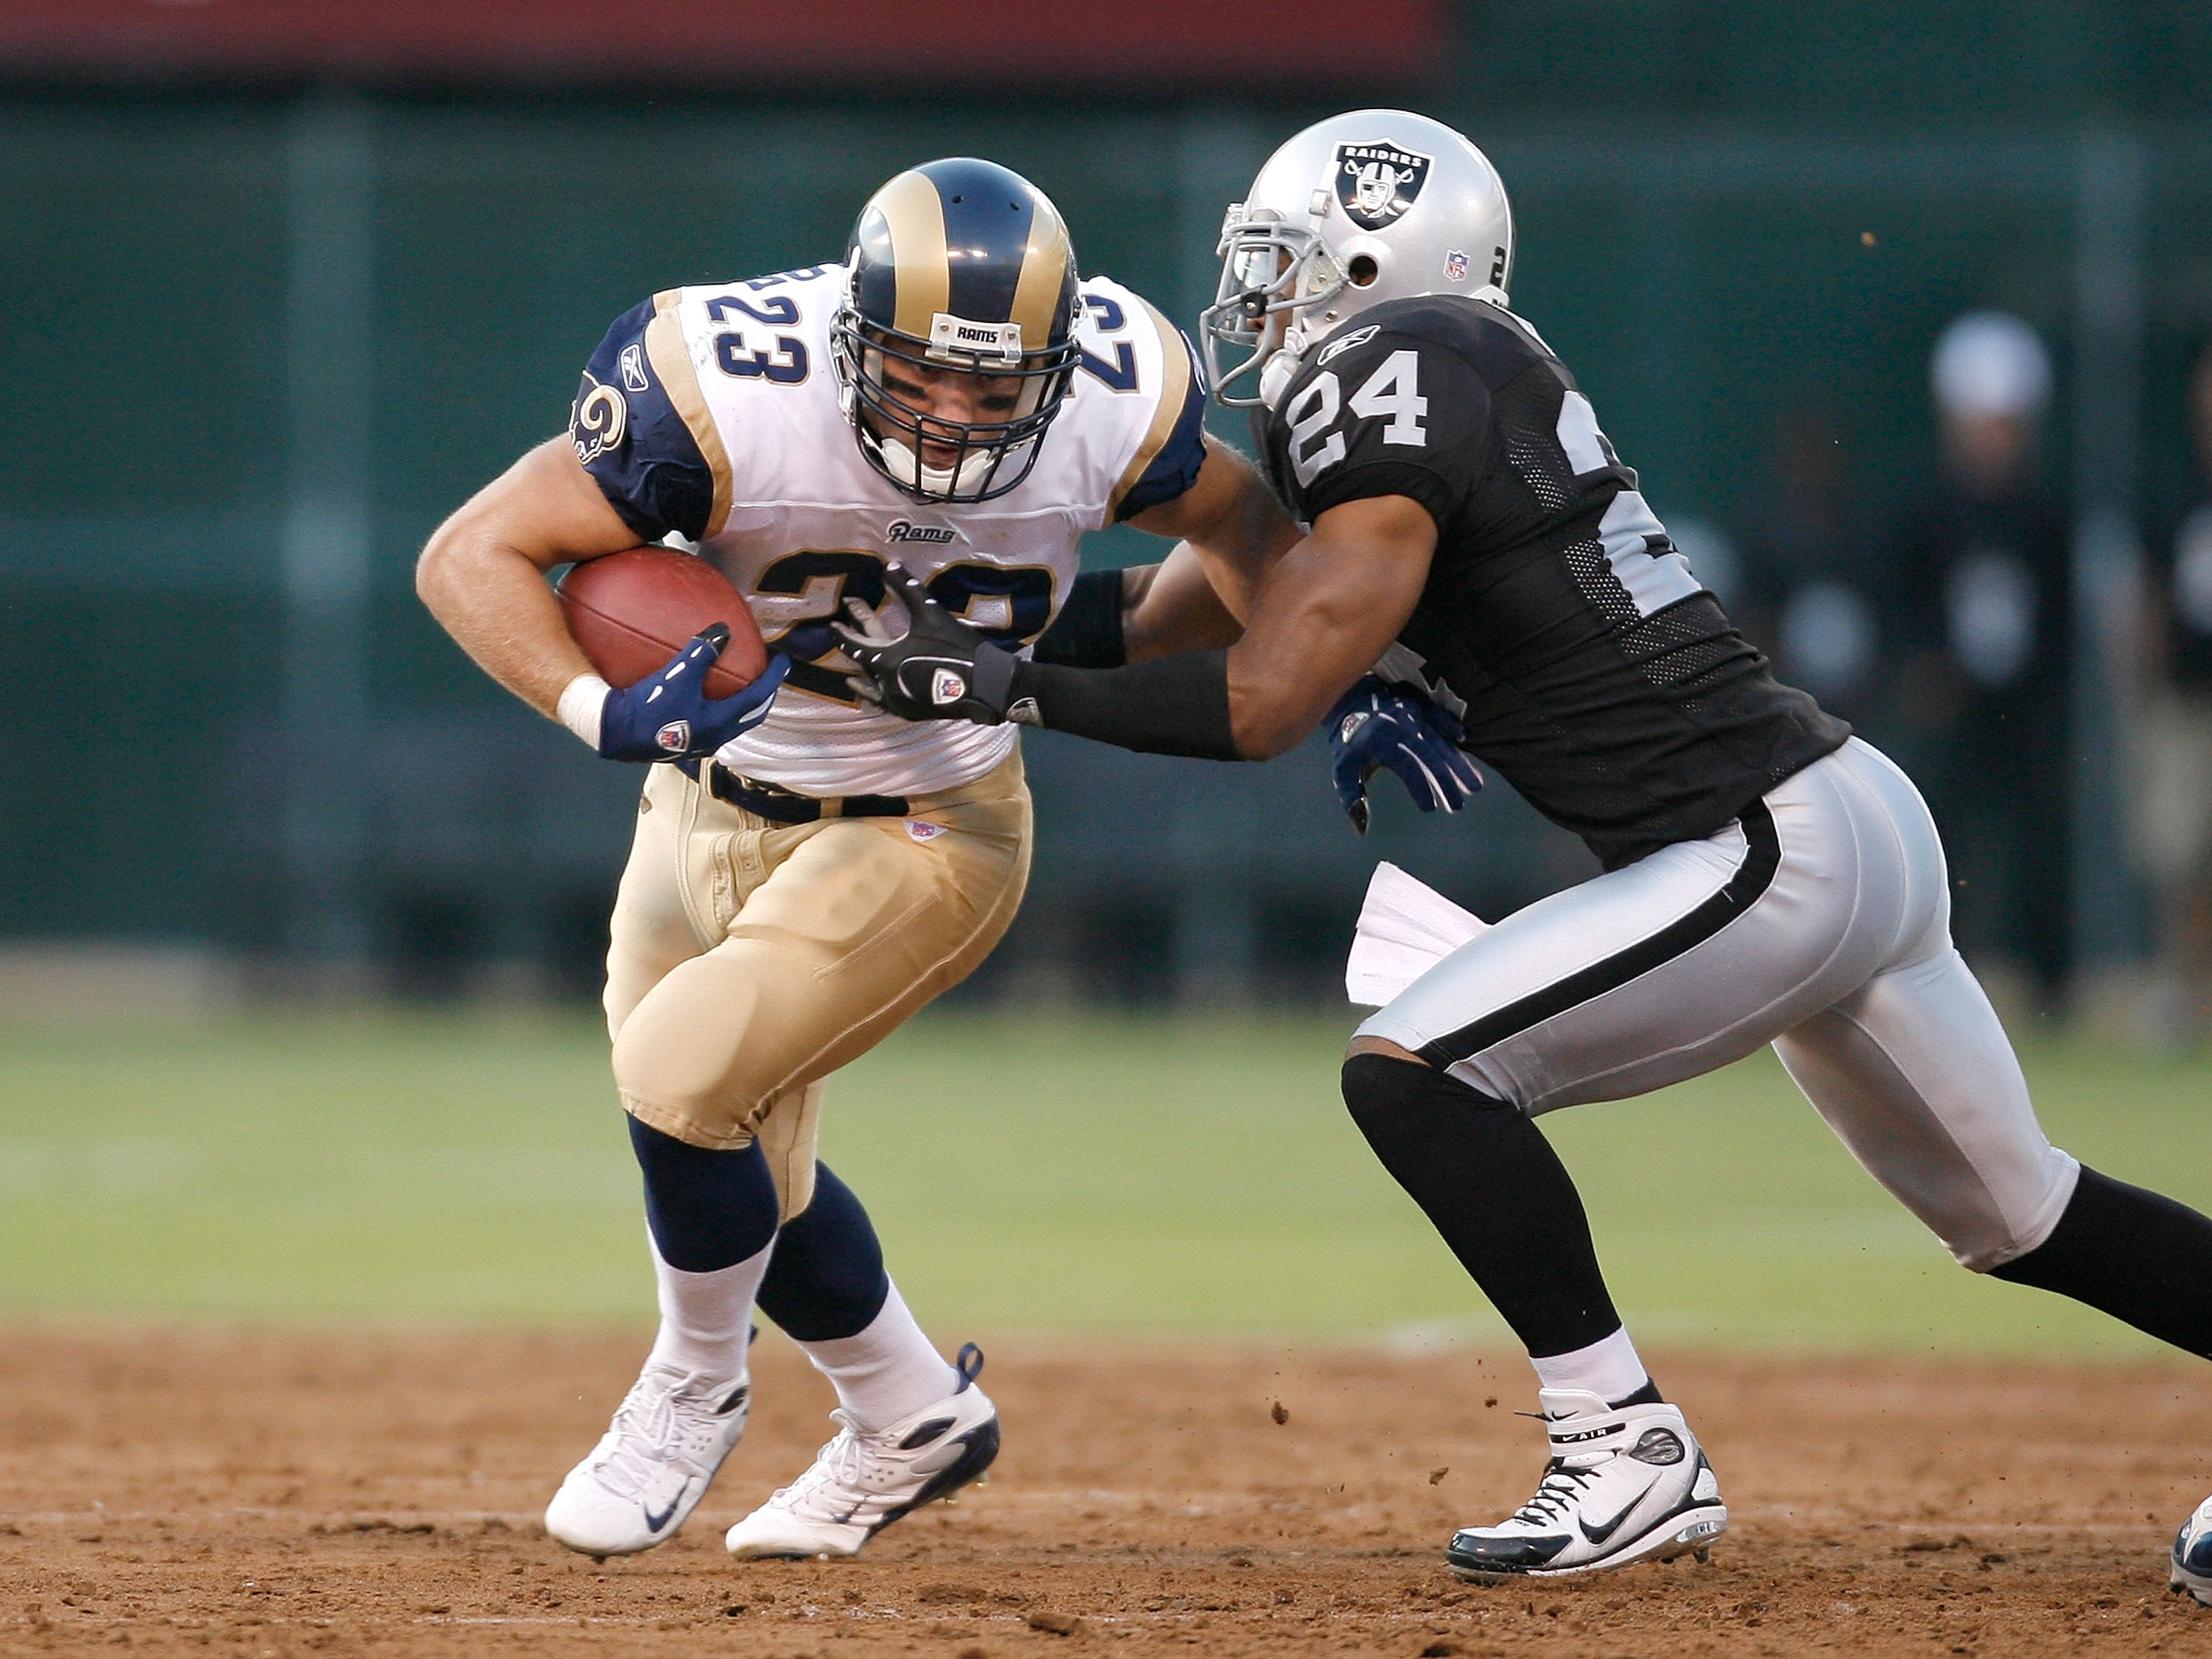 OAKLAND, CA - AUGUST 24:  Running back Brian Leonard #23 of the St. Louis Rams fights for yards as defensive back Michael Huff #24 of the Oakland Raiders tackles him during a preseason game on August 24, 2007 at McAfee Coliseum in Oakland, California.  (P